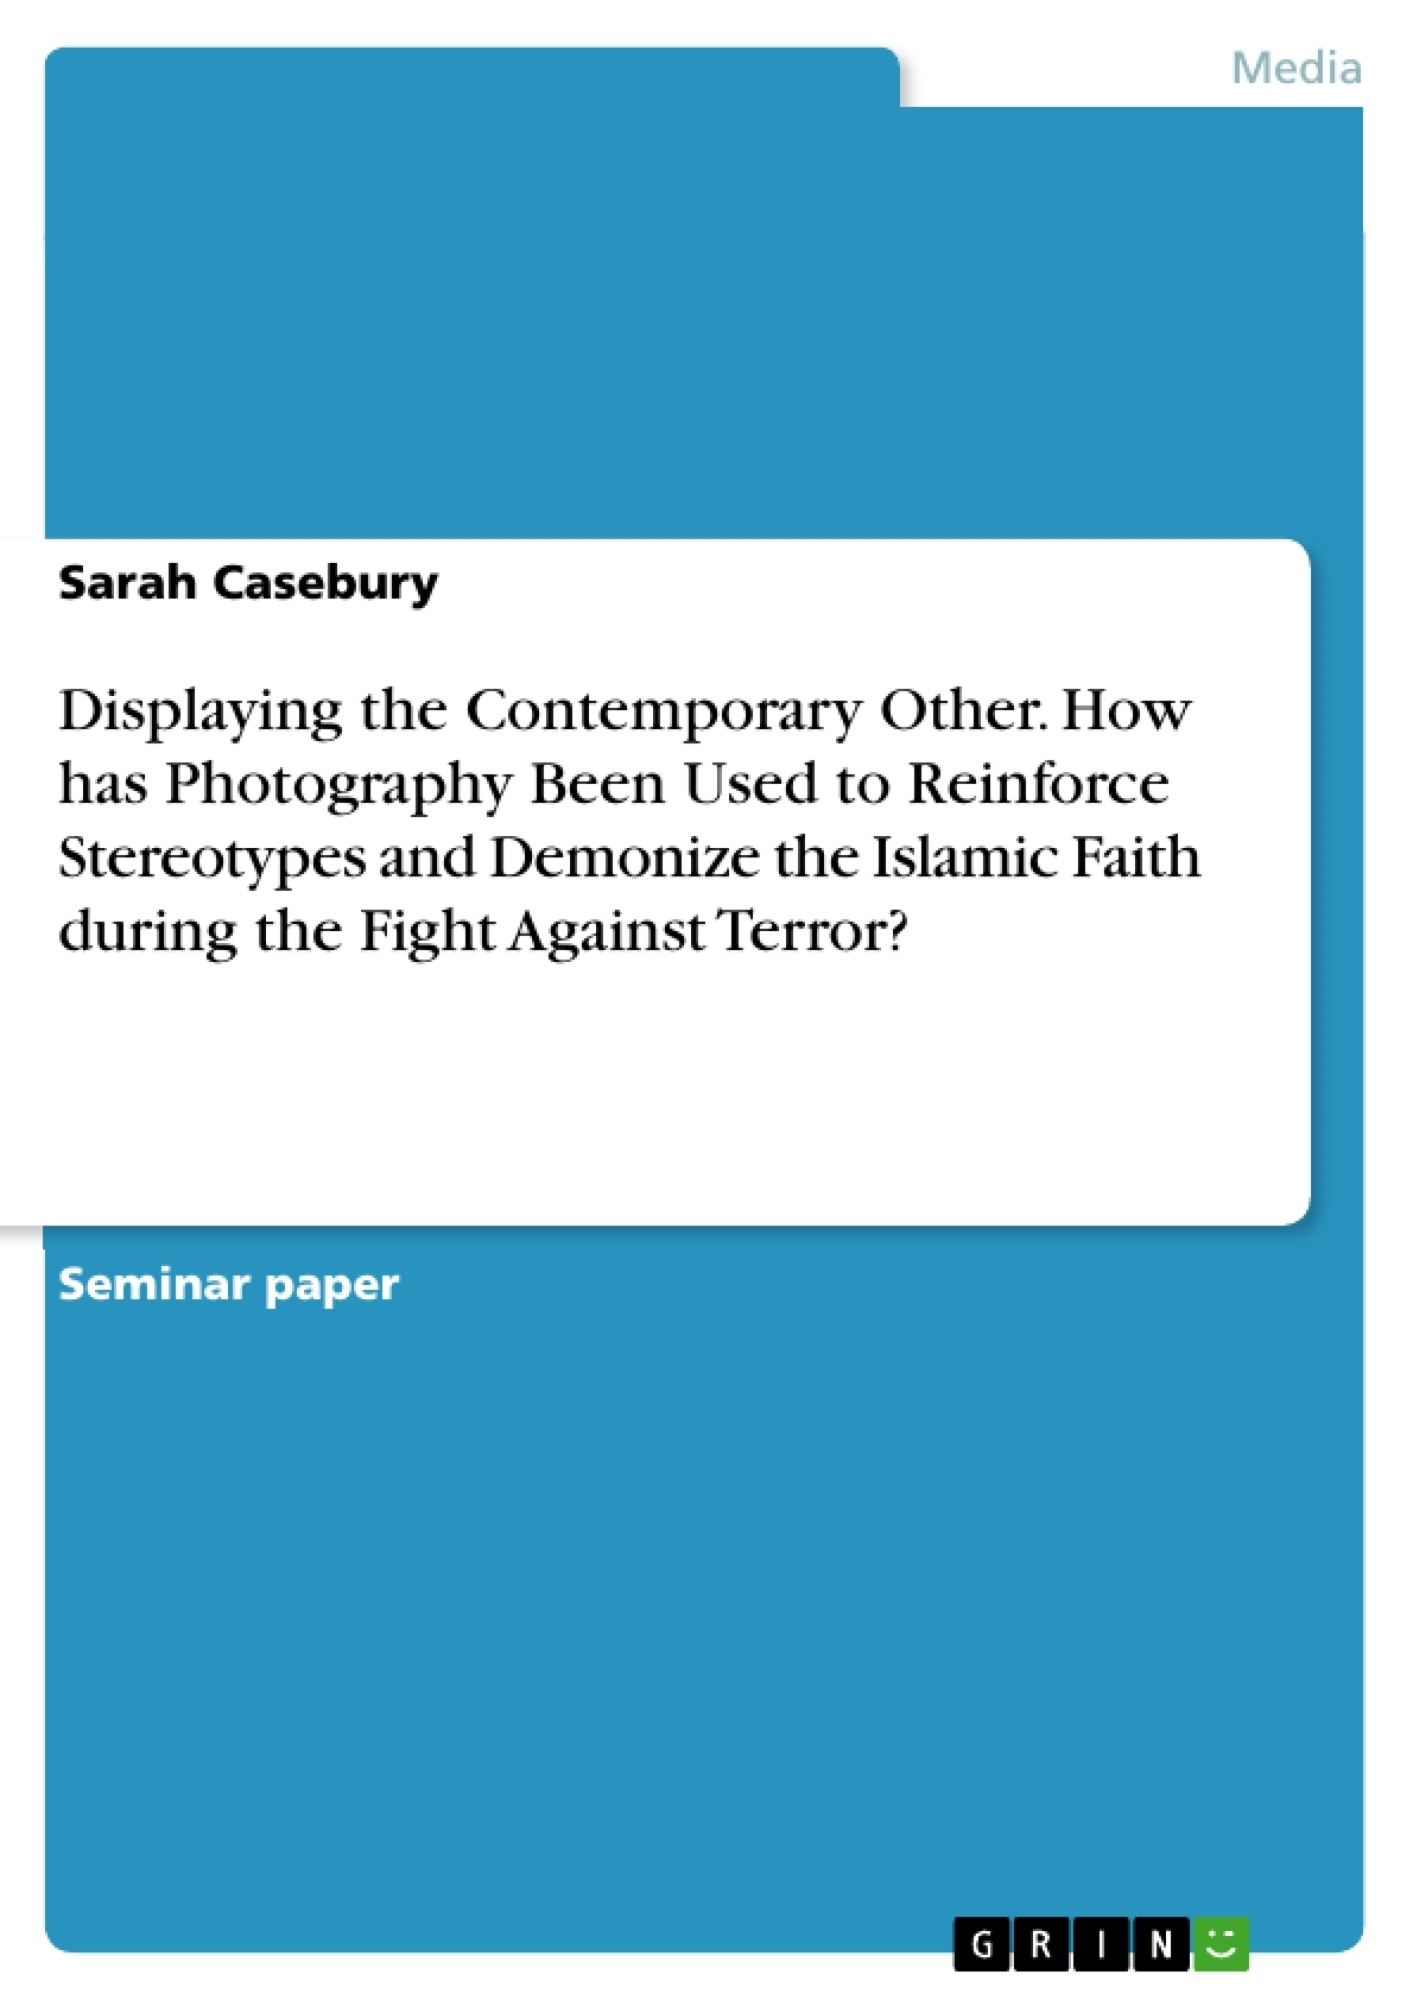 Title: Displaying the Contemporary Other. How has Photography Been Used to Reinforce Stereotypes and Demonize the Islamic Faith during the Fight Against Terror?